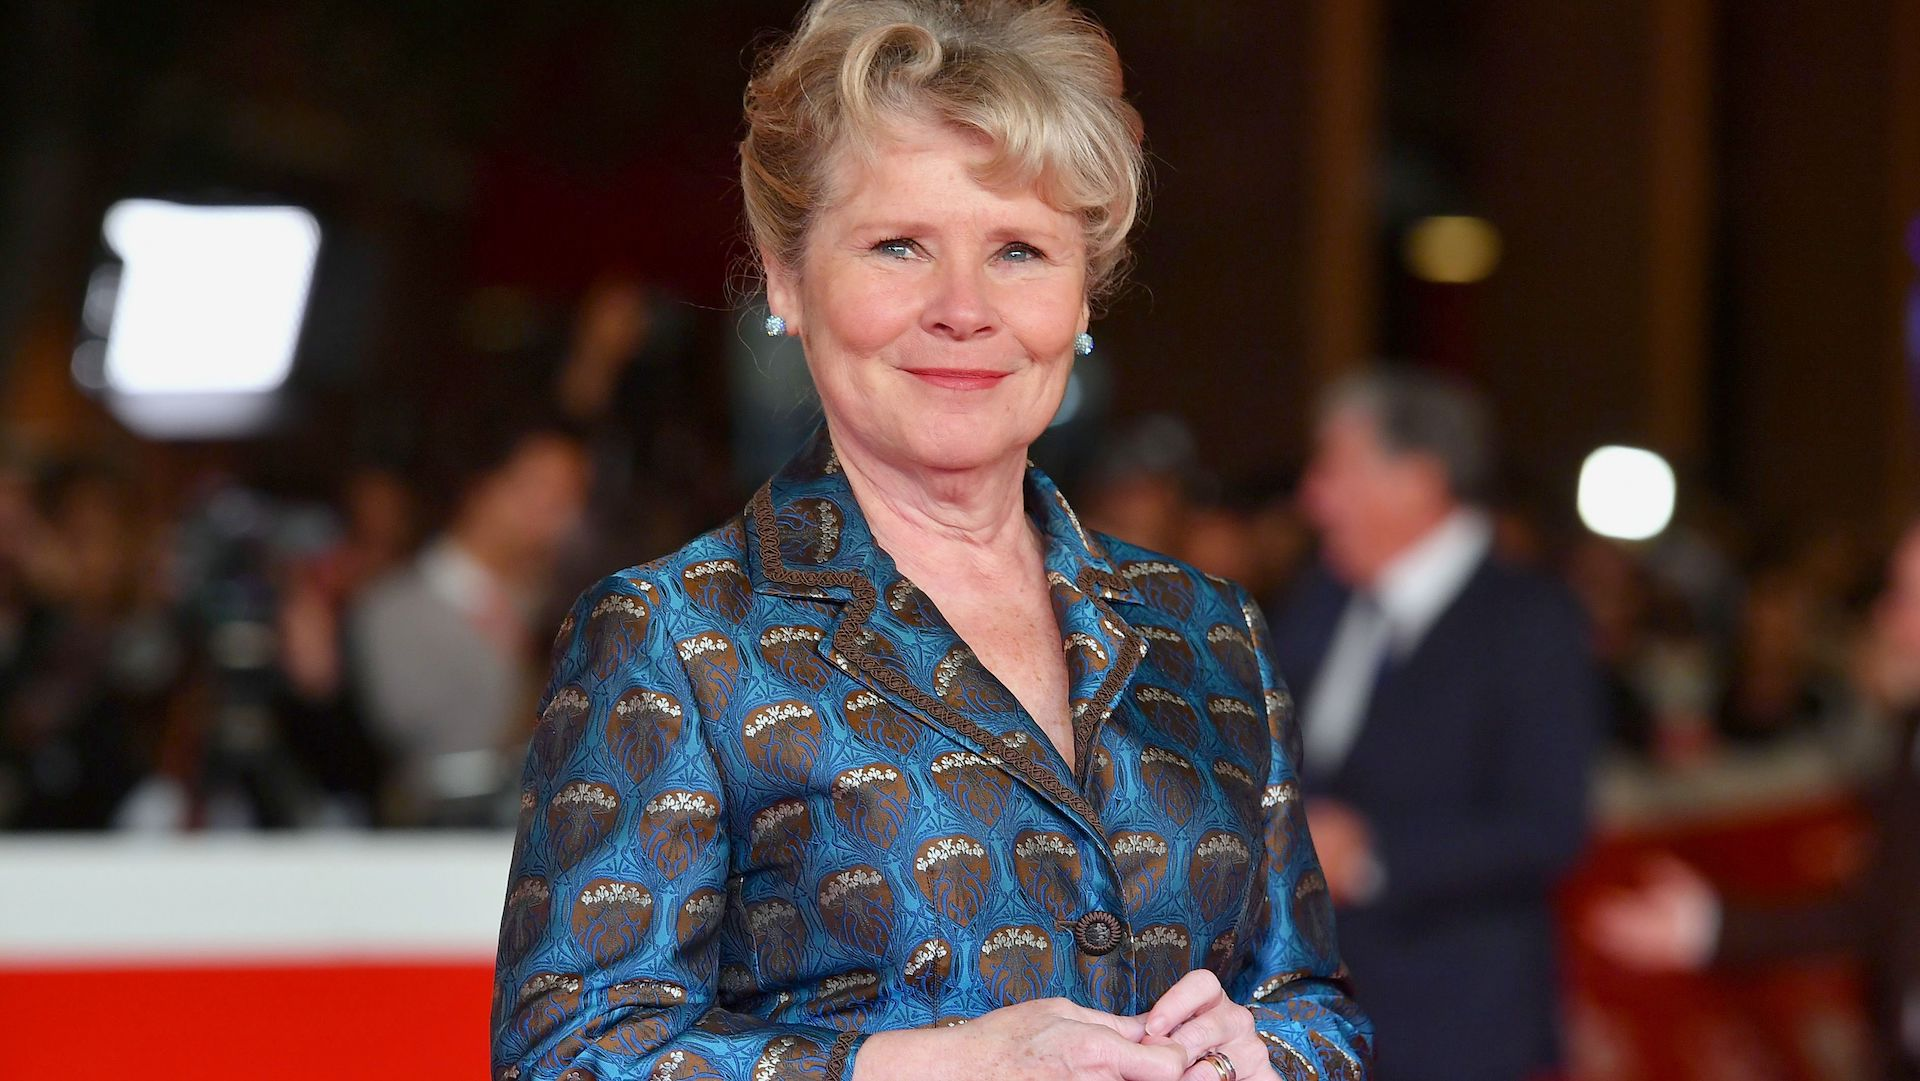 Netflix Confirms The Crown Will End With Season 5 Starring Imelda Staunton